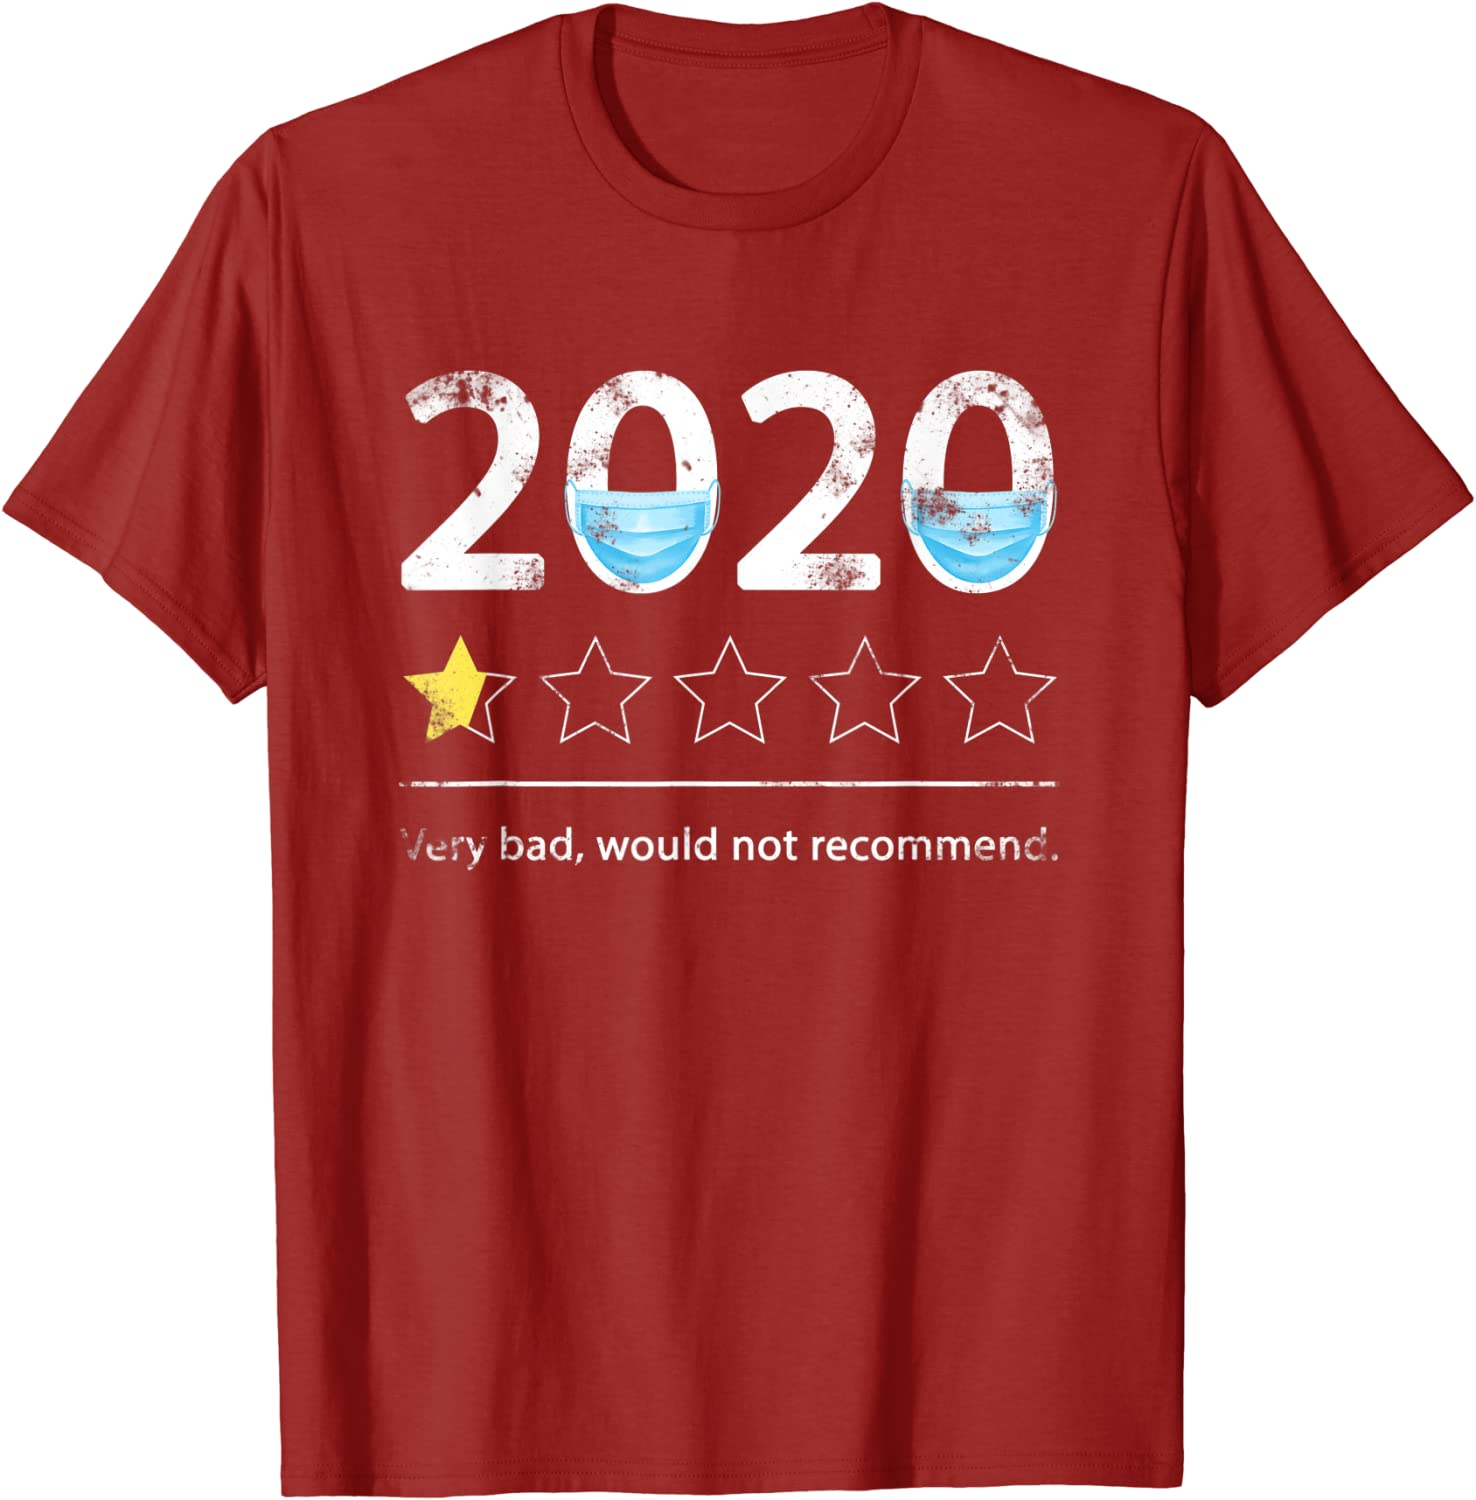 2020 Very Bad Would Not Recommend Funny New Outlet SALE item T-Sh Kids Men Women Mask